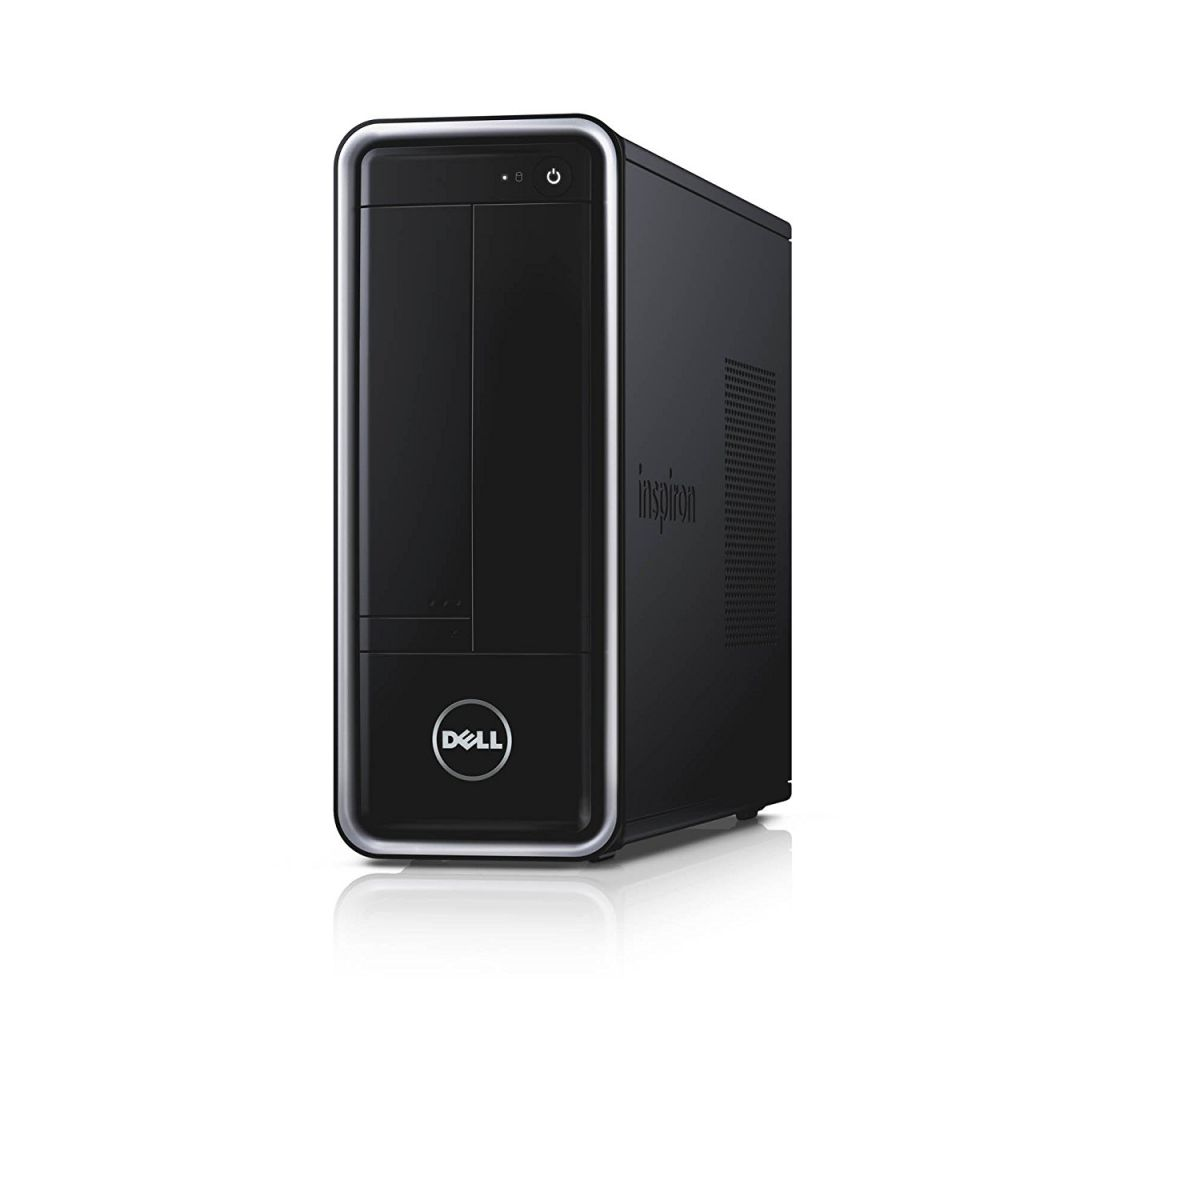 Cpu Dell Inspiron 3647 G3250 /4Gb/500Gb/Dvd/Wifi/W10 Home